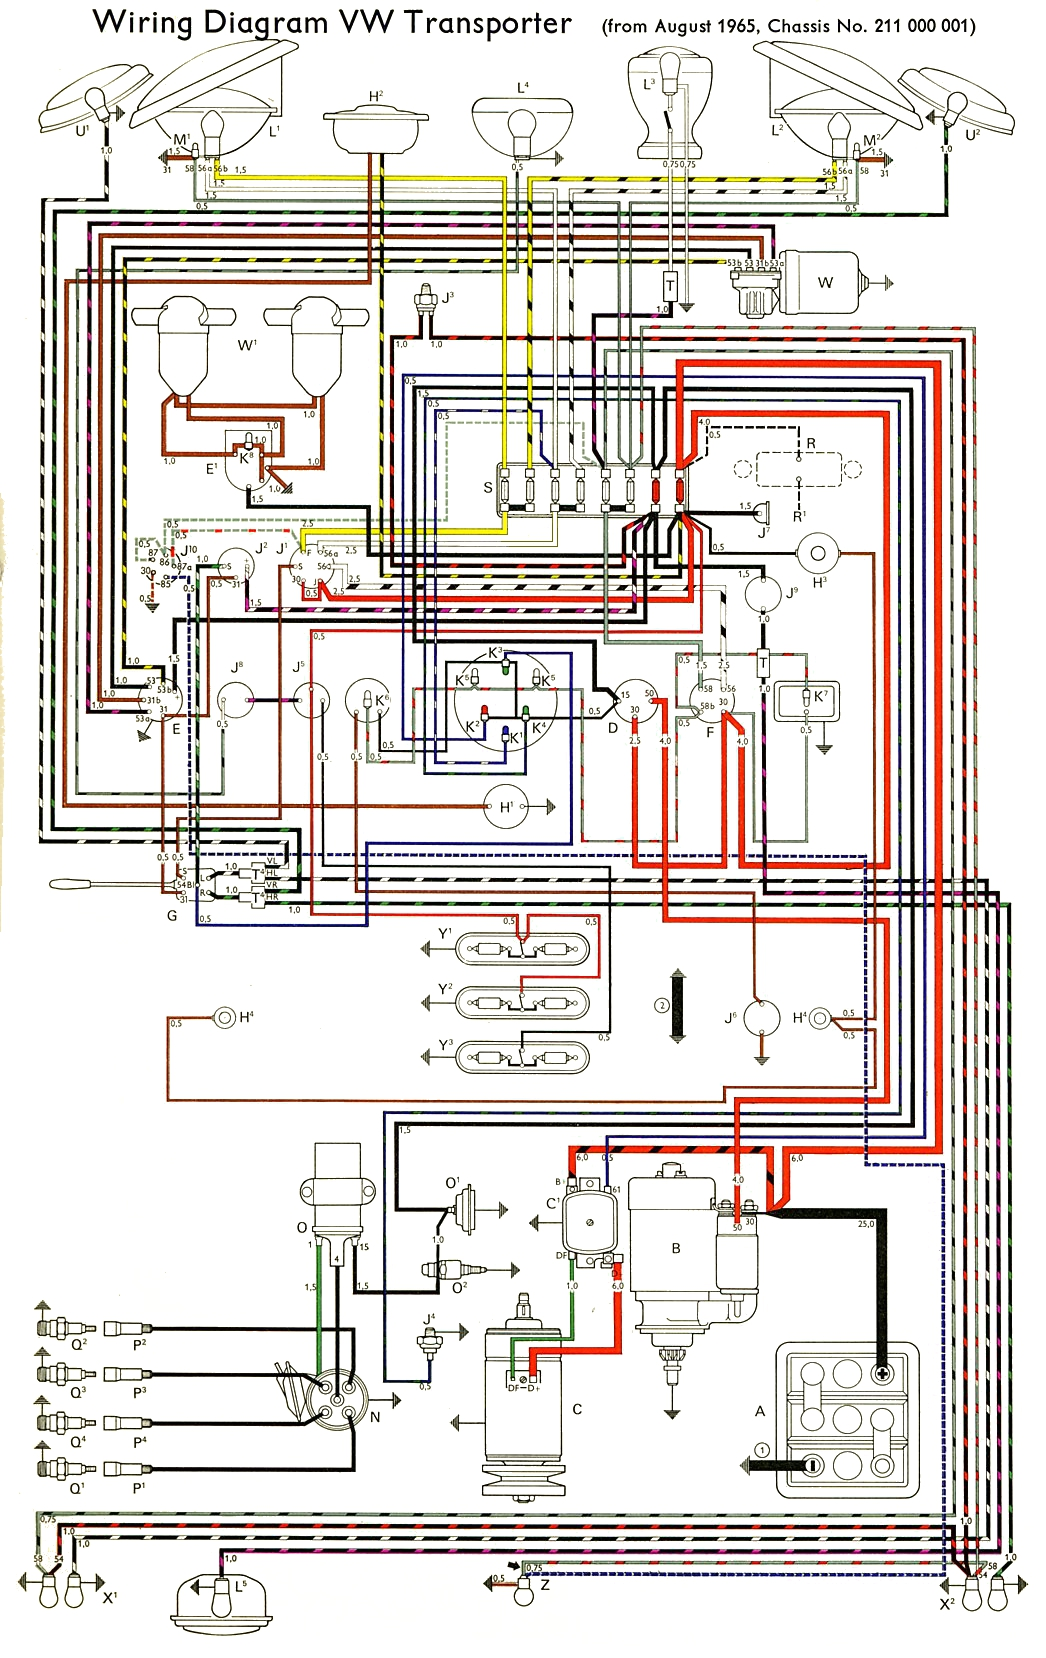 Vw Wiring Harness Diagram Starting Know About Mk3 1979 Opinions U2022 Rh Voterid Co 2003 Passat